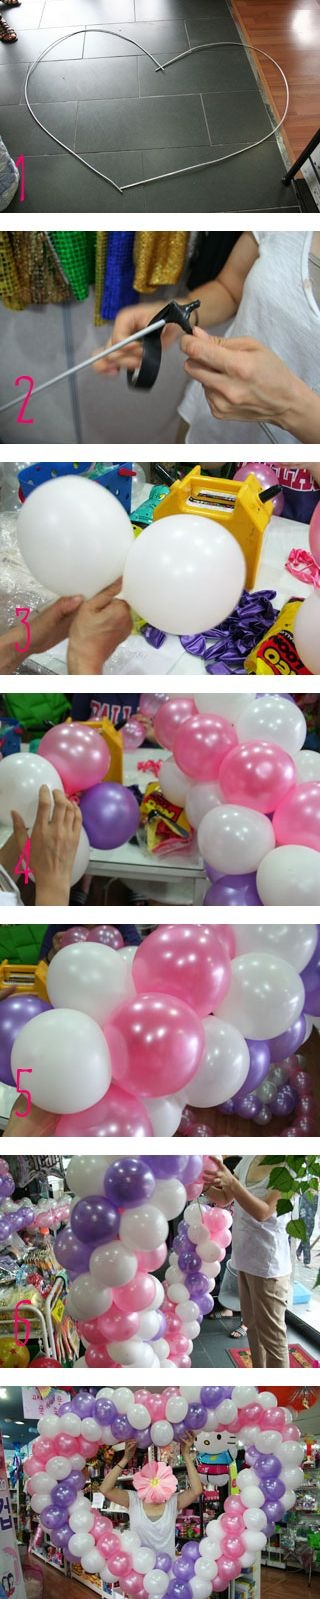 Party Ideas at Paperchase  Celebrate amp Have Fun